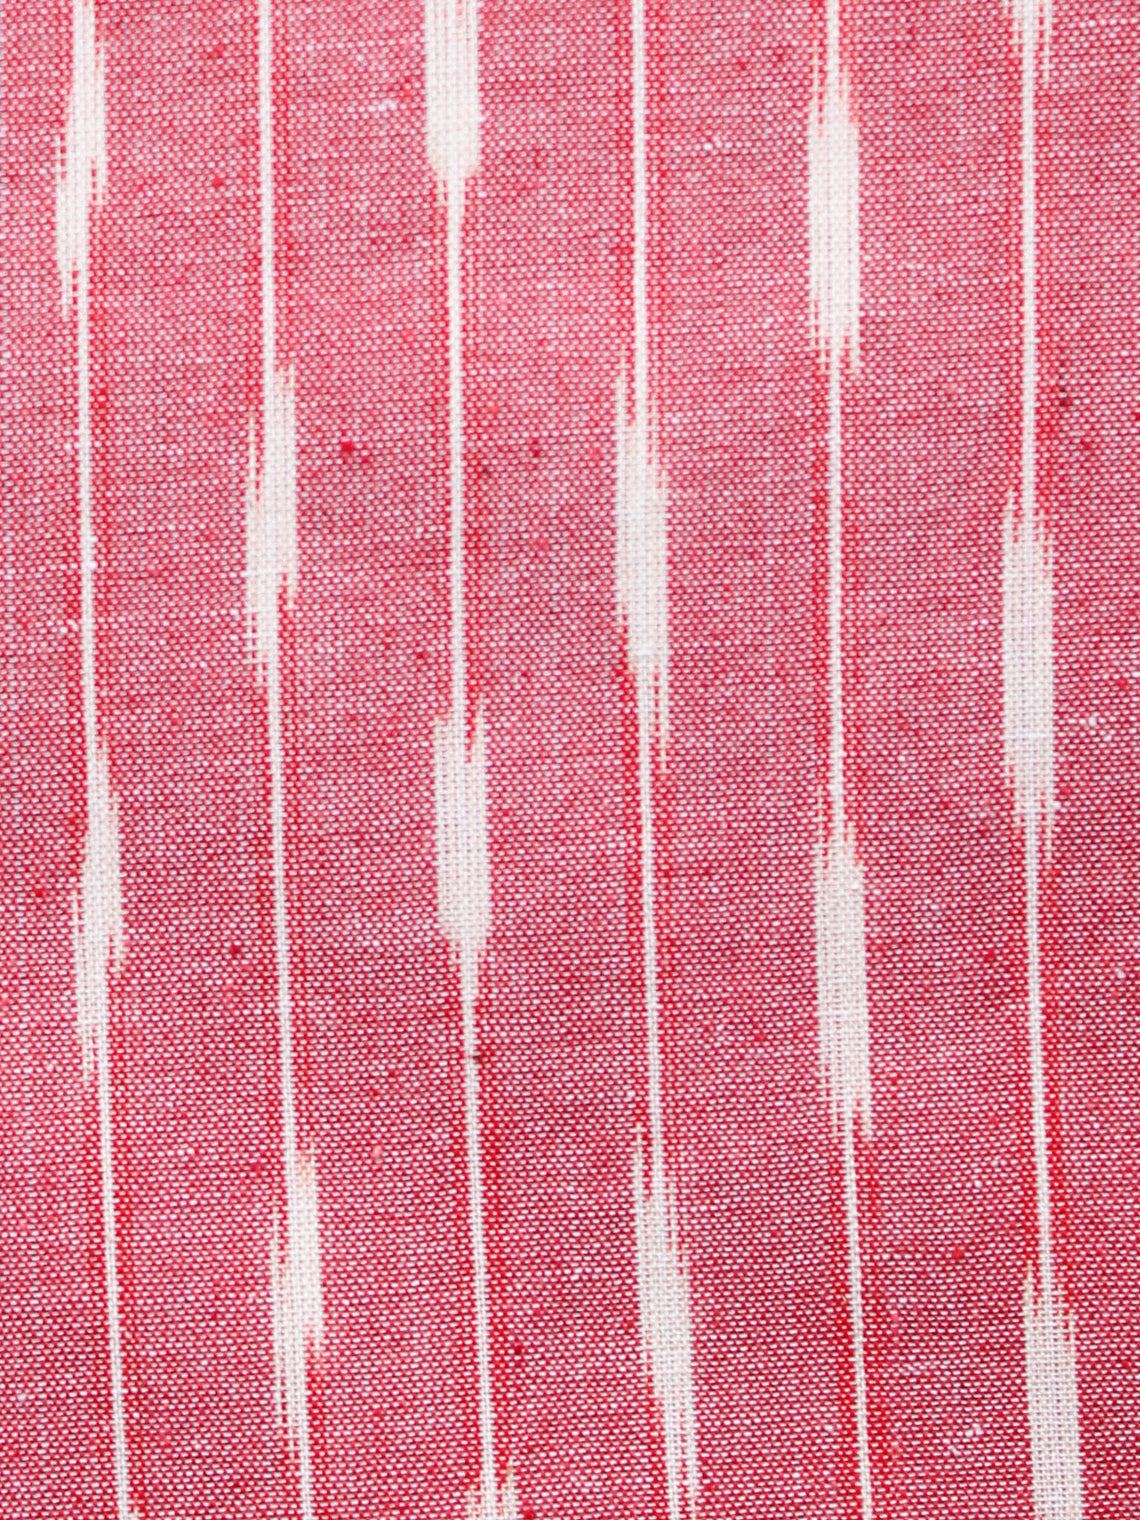 Coral Ivory Pochampally Hand Woven Ikat Cotton Fabric Per Meter - F002F1453